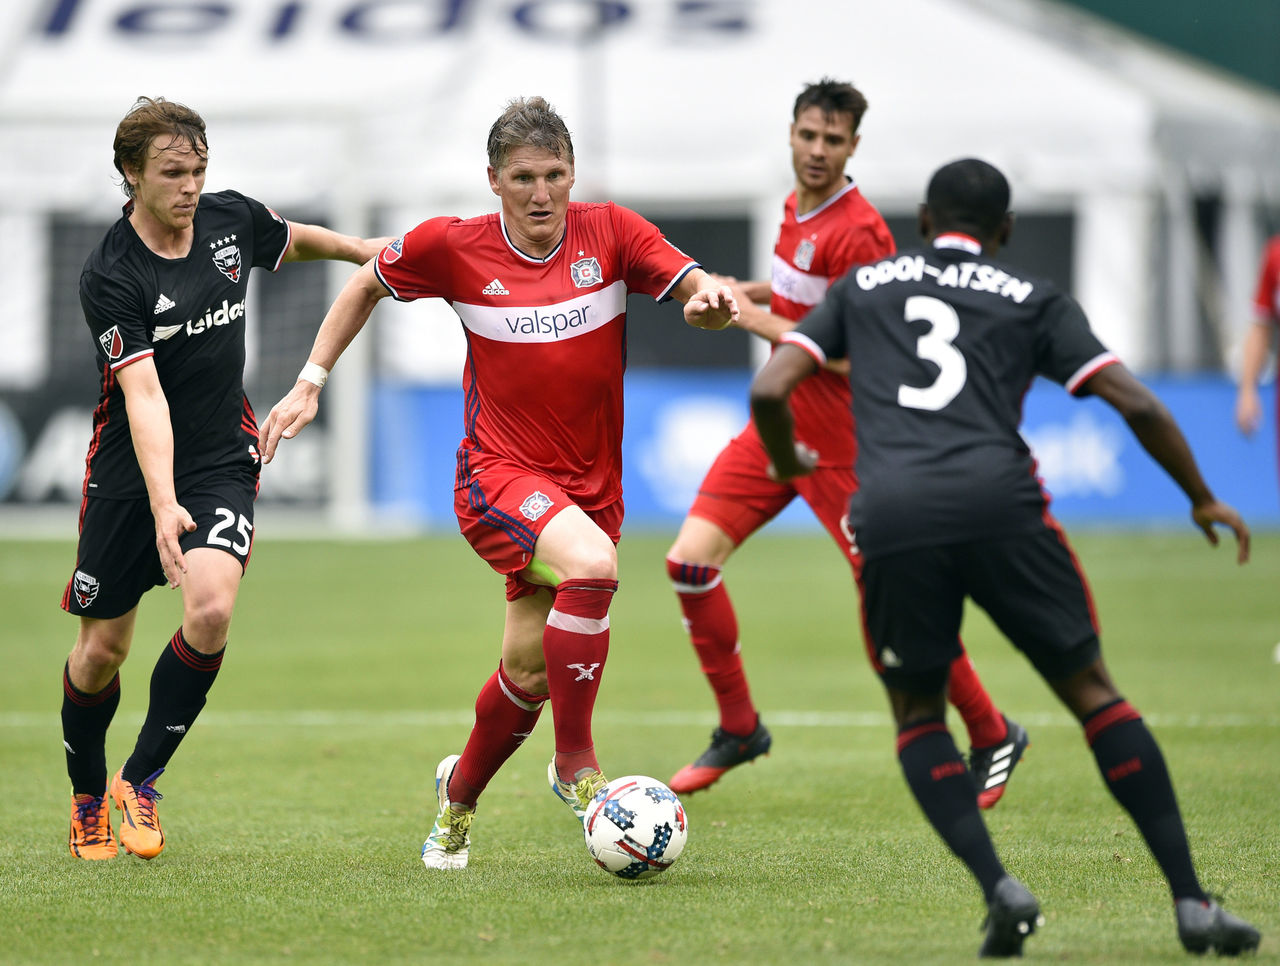 Cropped 2017 05 20t222513z 1045944883 nocid rtrmadp 3 mls chicago fire at d c united